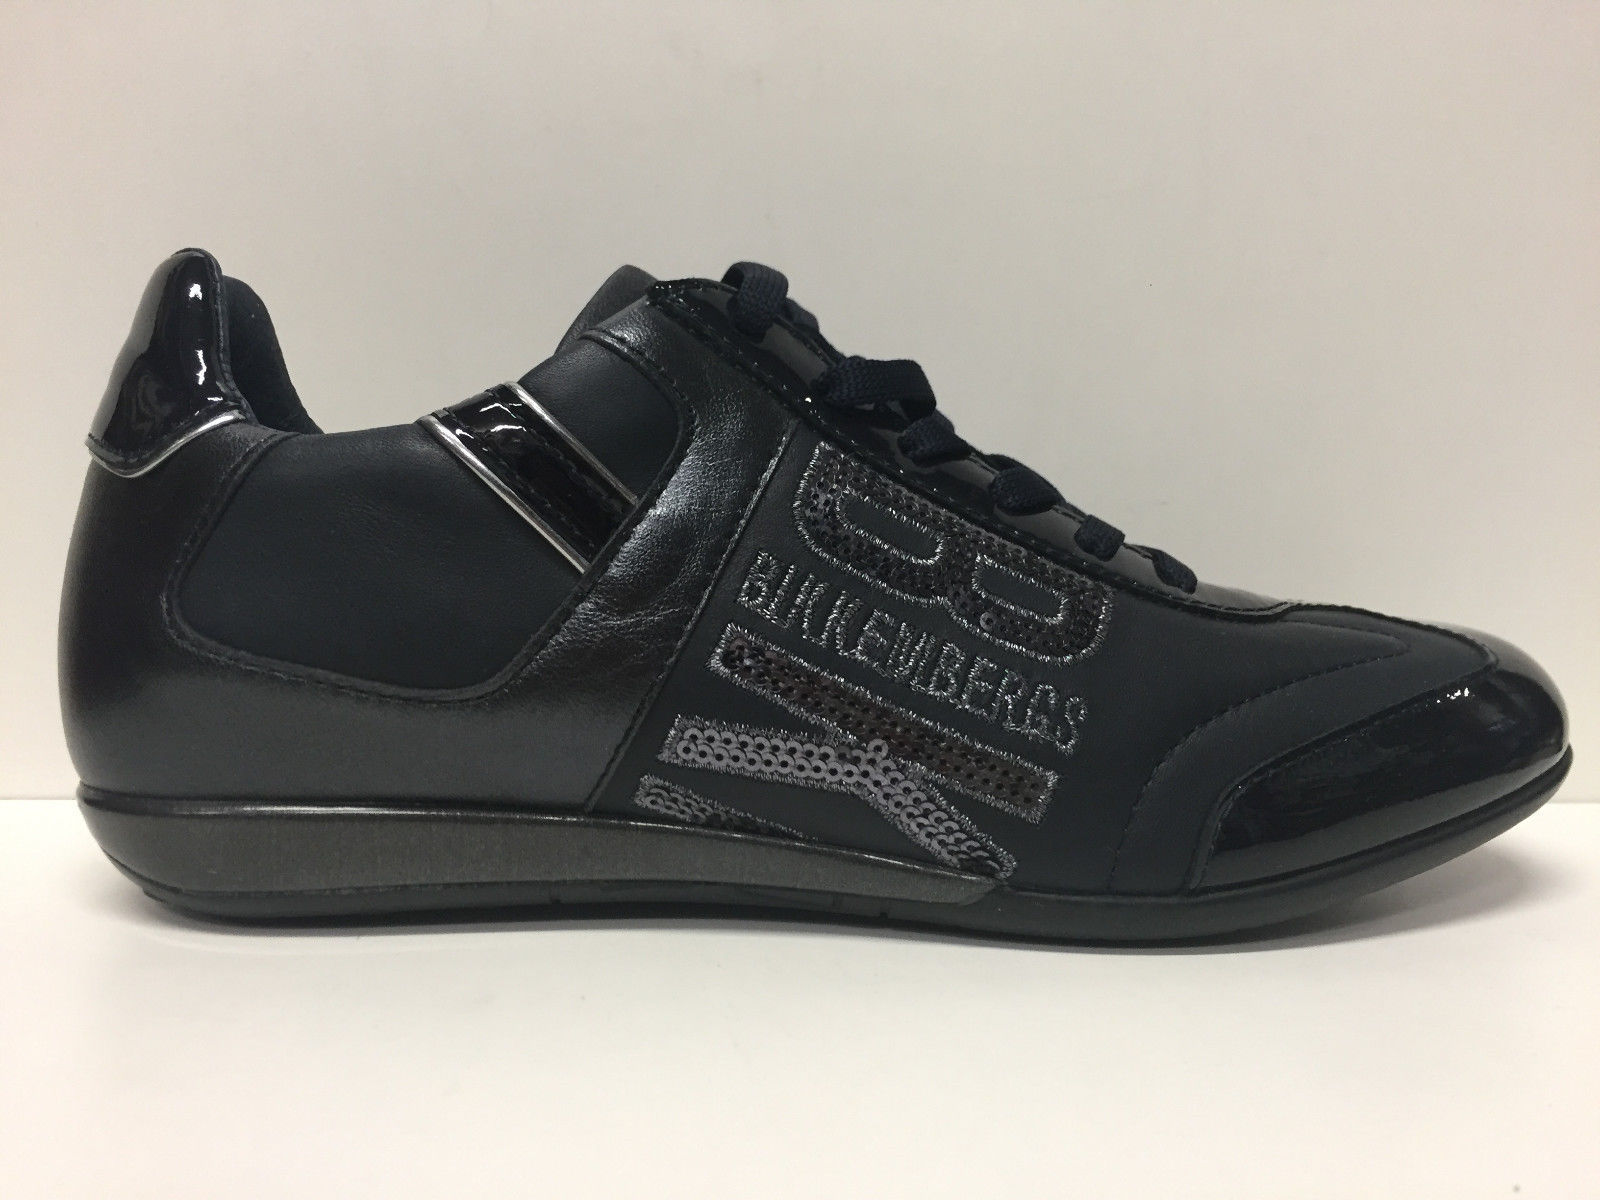 SCARPE SNEAKERS DONNA BIKKEMBERGS ORIGINALI BKE103449 PELLE SHOES LEATHER WOMAN